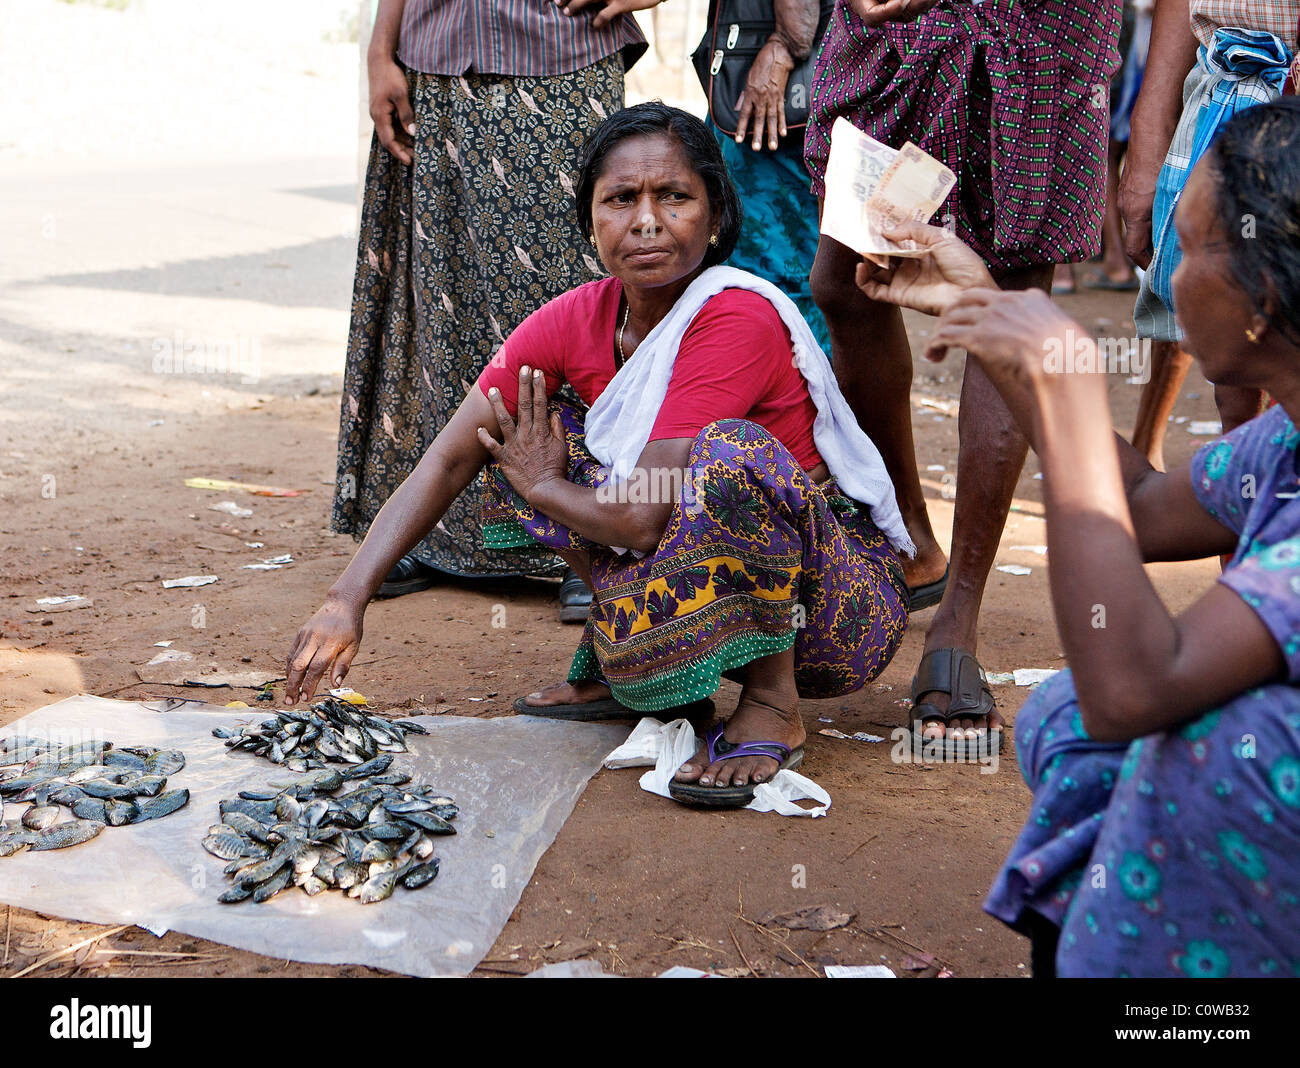 A Keralite woman sells her fish at a roadside fish market on the Backwaters, Kochi, Kerala, India - Stock Image